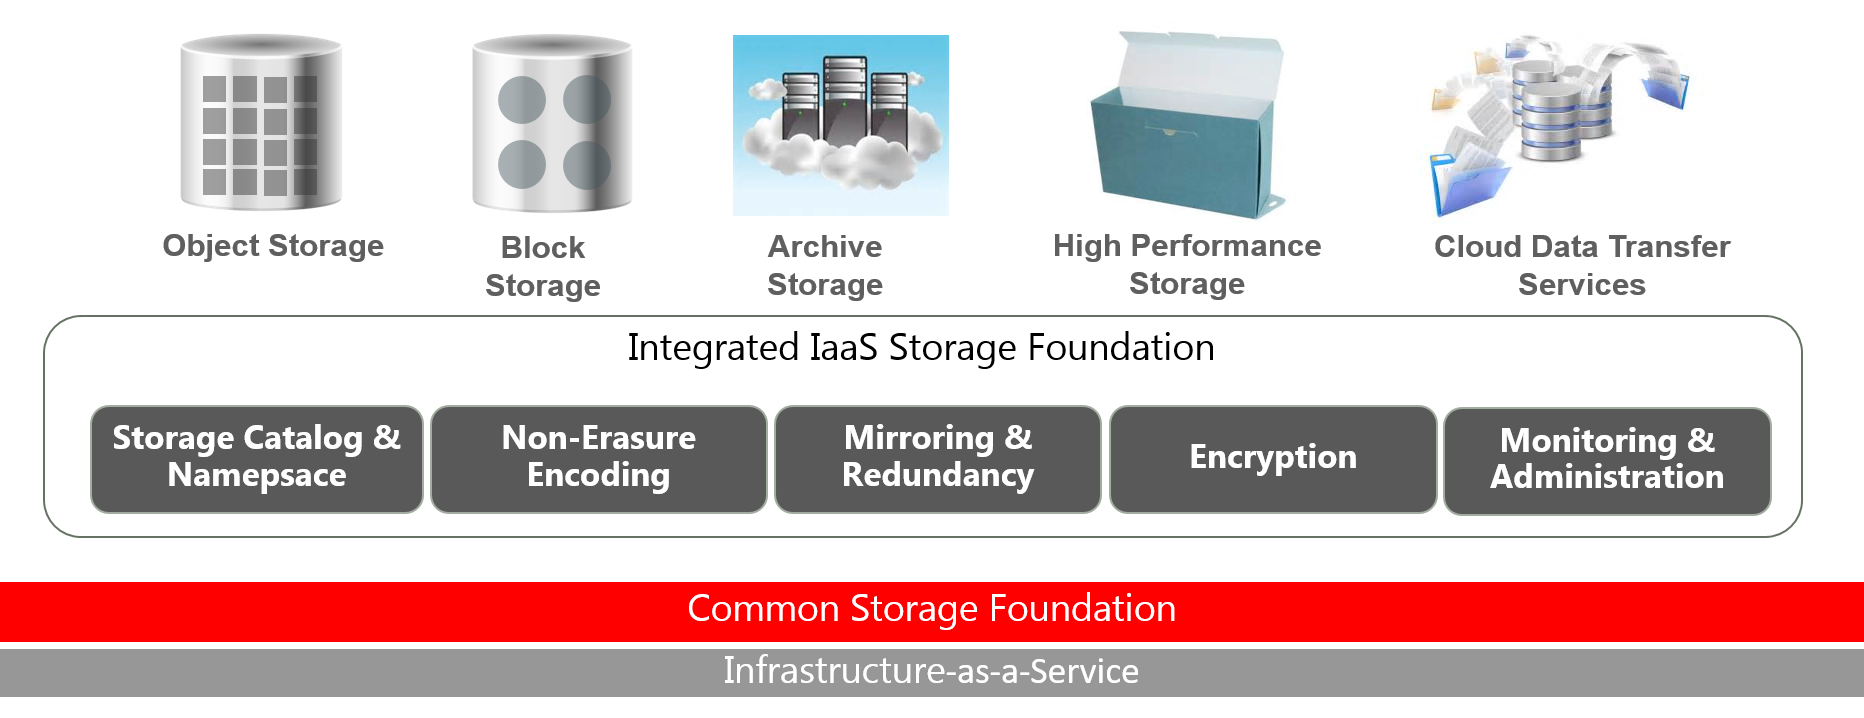 Oracle Storage Cloud Service 활성화